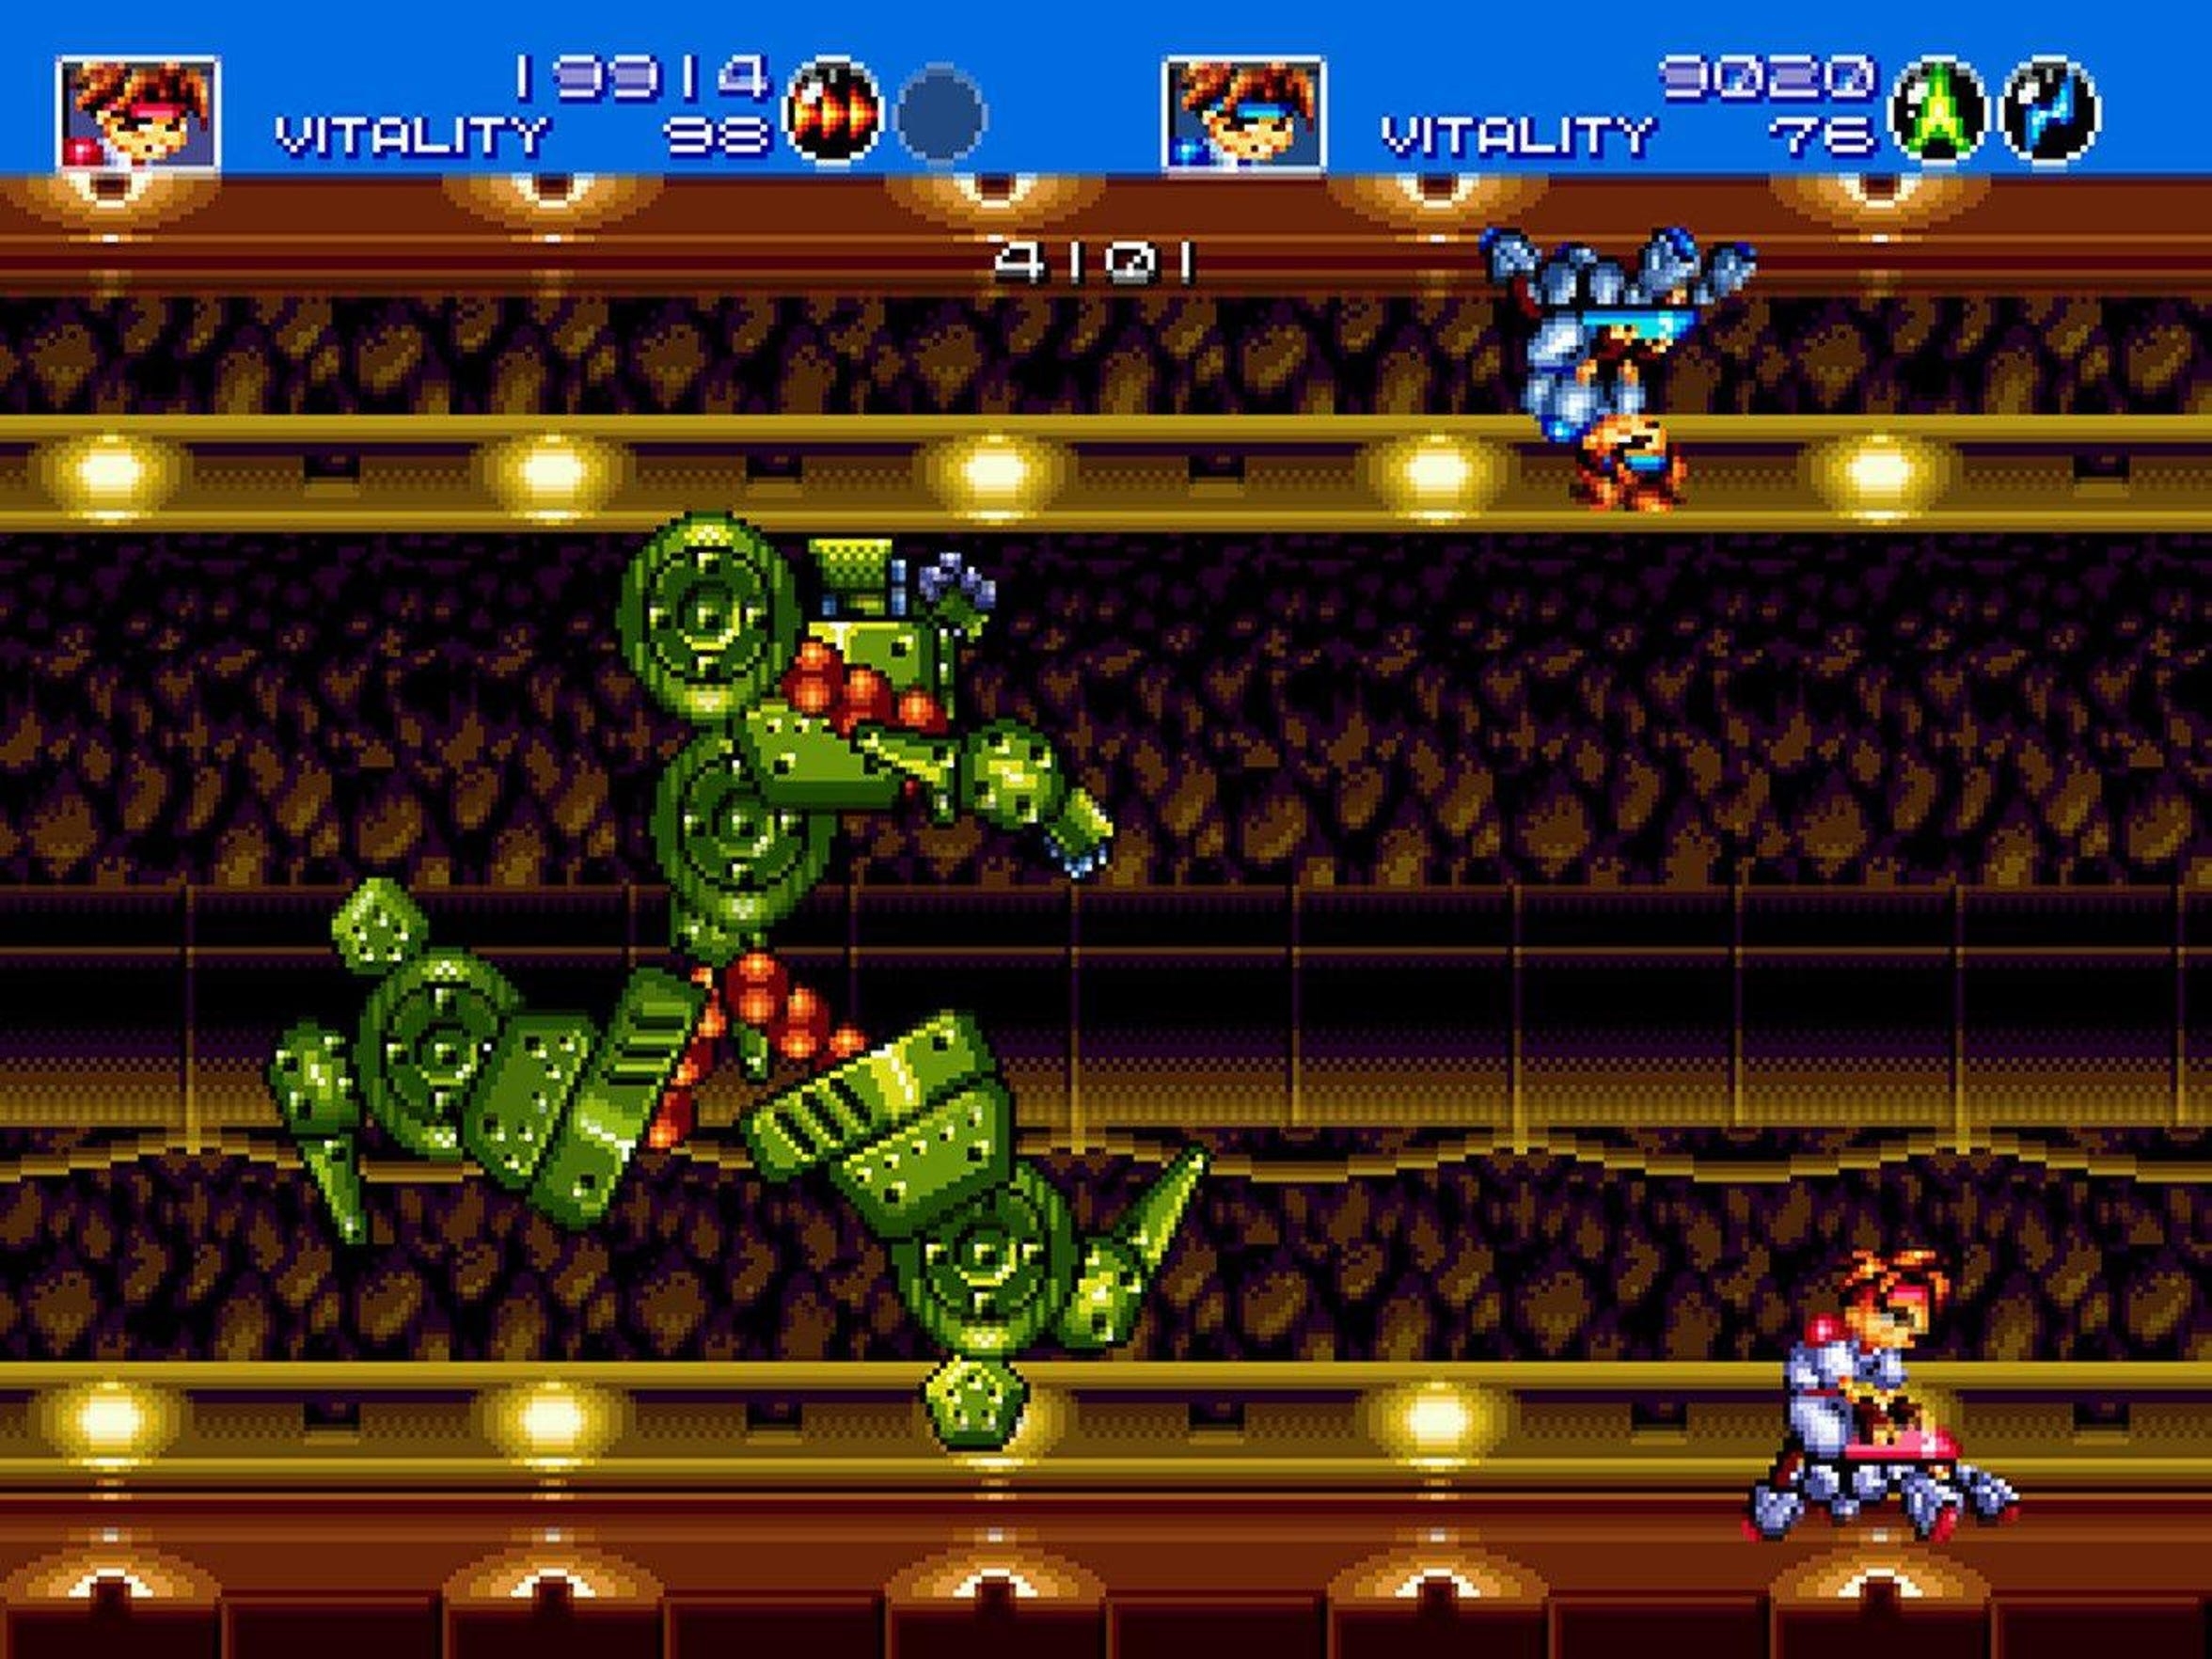 Crazy bosses are the norm in 16-bit classic run-and-gun